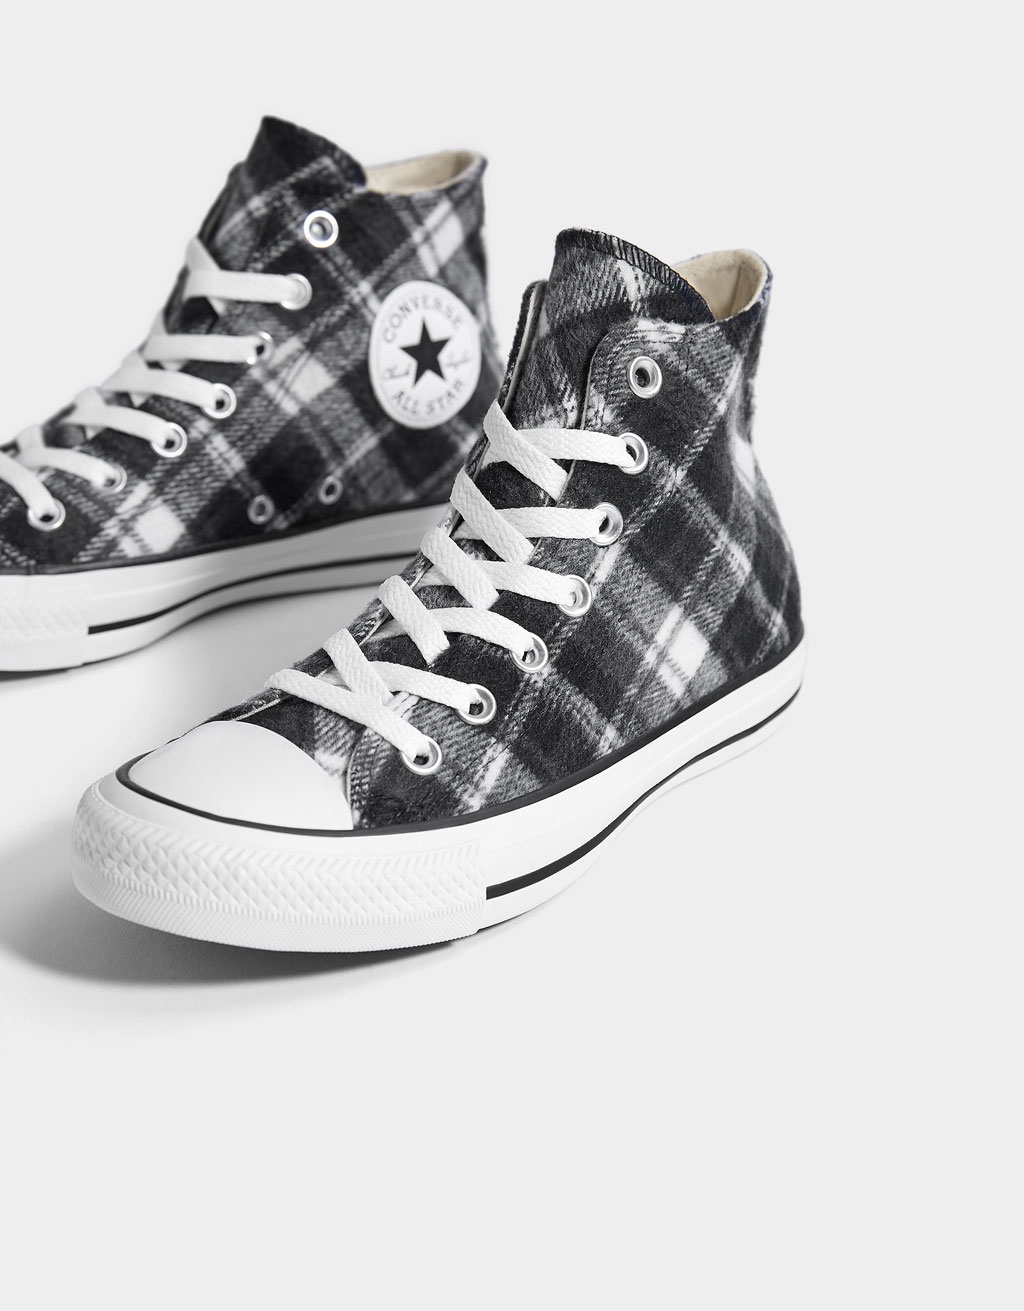 463092dd3 CONVERSE CHUCK TAYLOR ALL STAR High-top trainers - Boots & Ankle ...